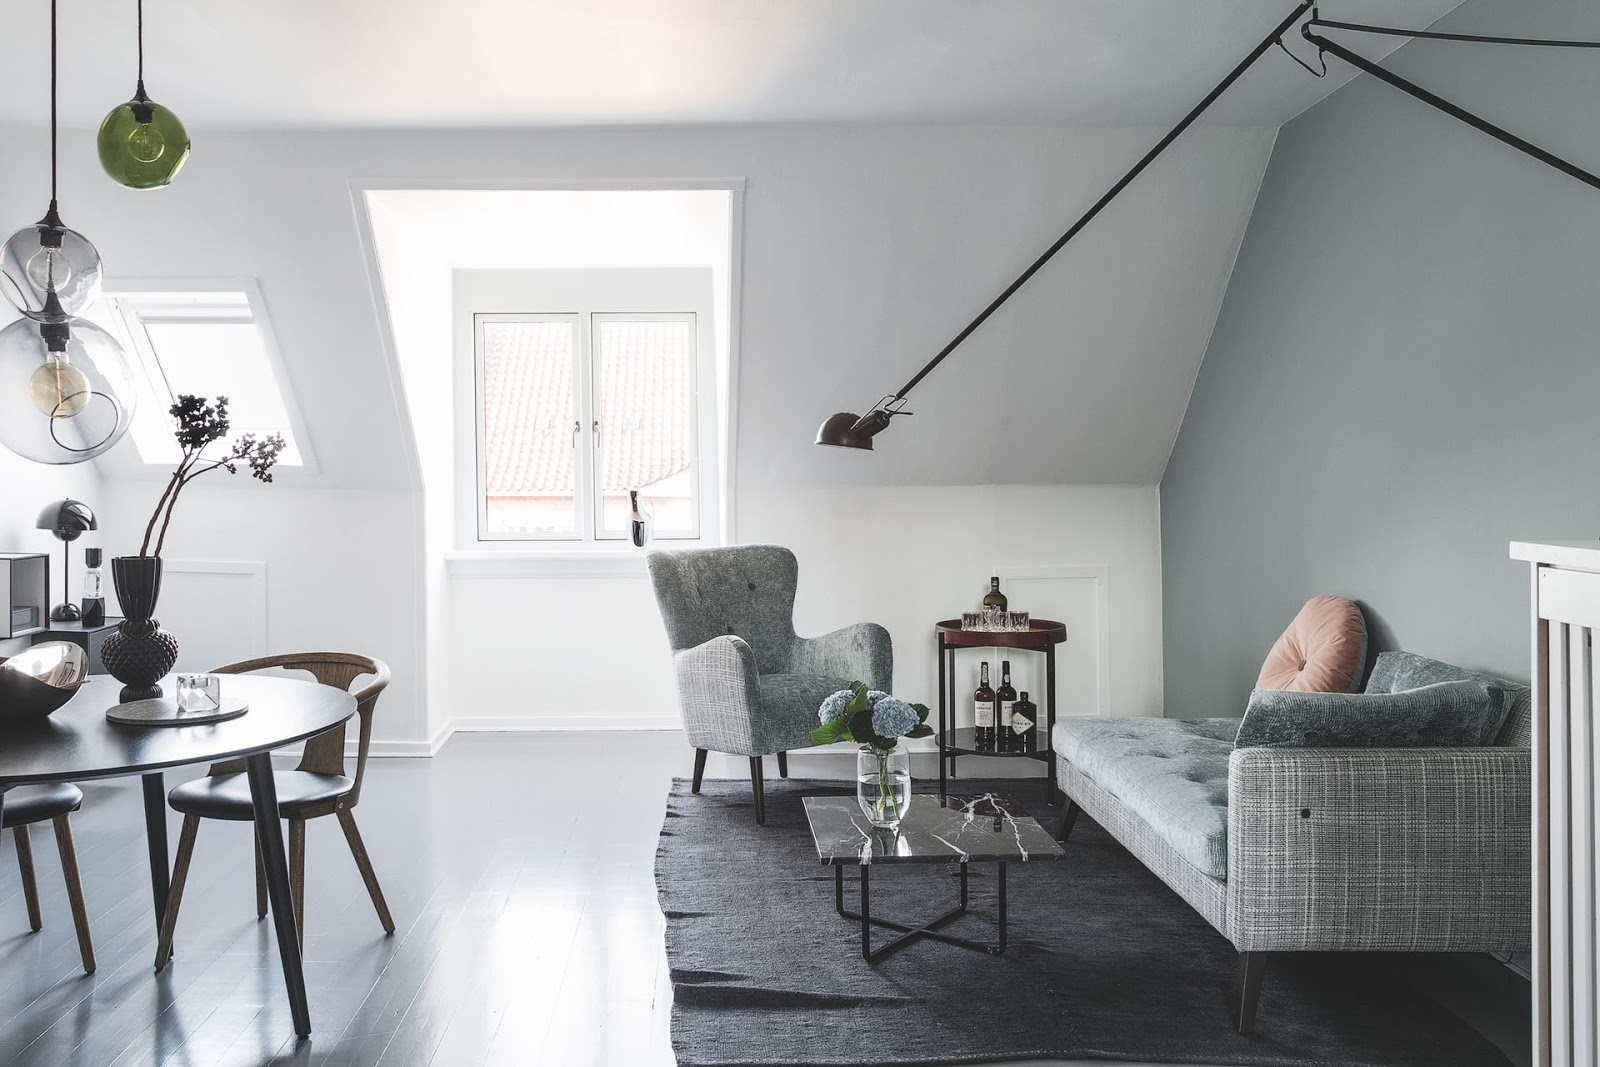 Nordic penthouse with muted pastel colors, flos wall lamp and panton lamp